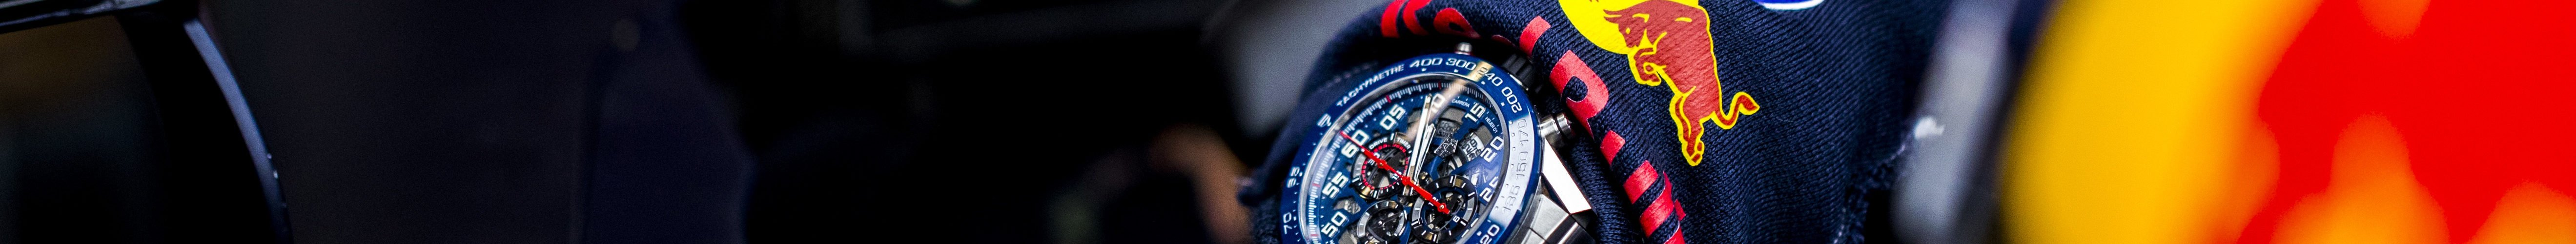 TAG Heuer Carrera Red Bull Racing